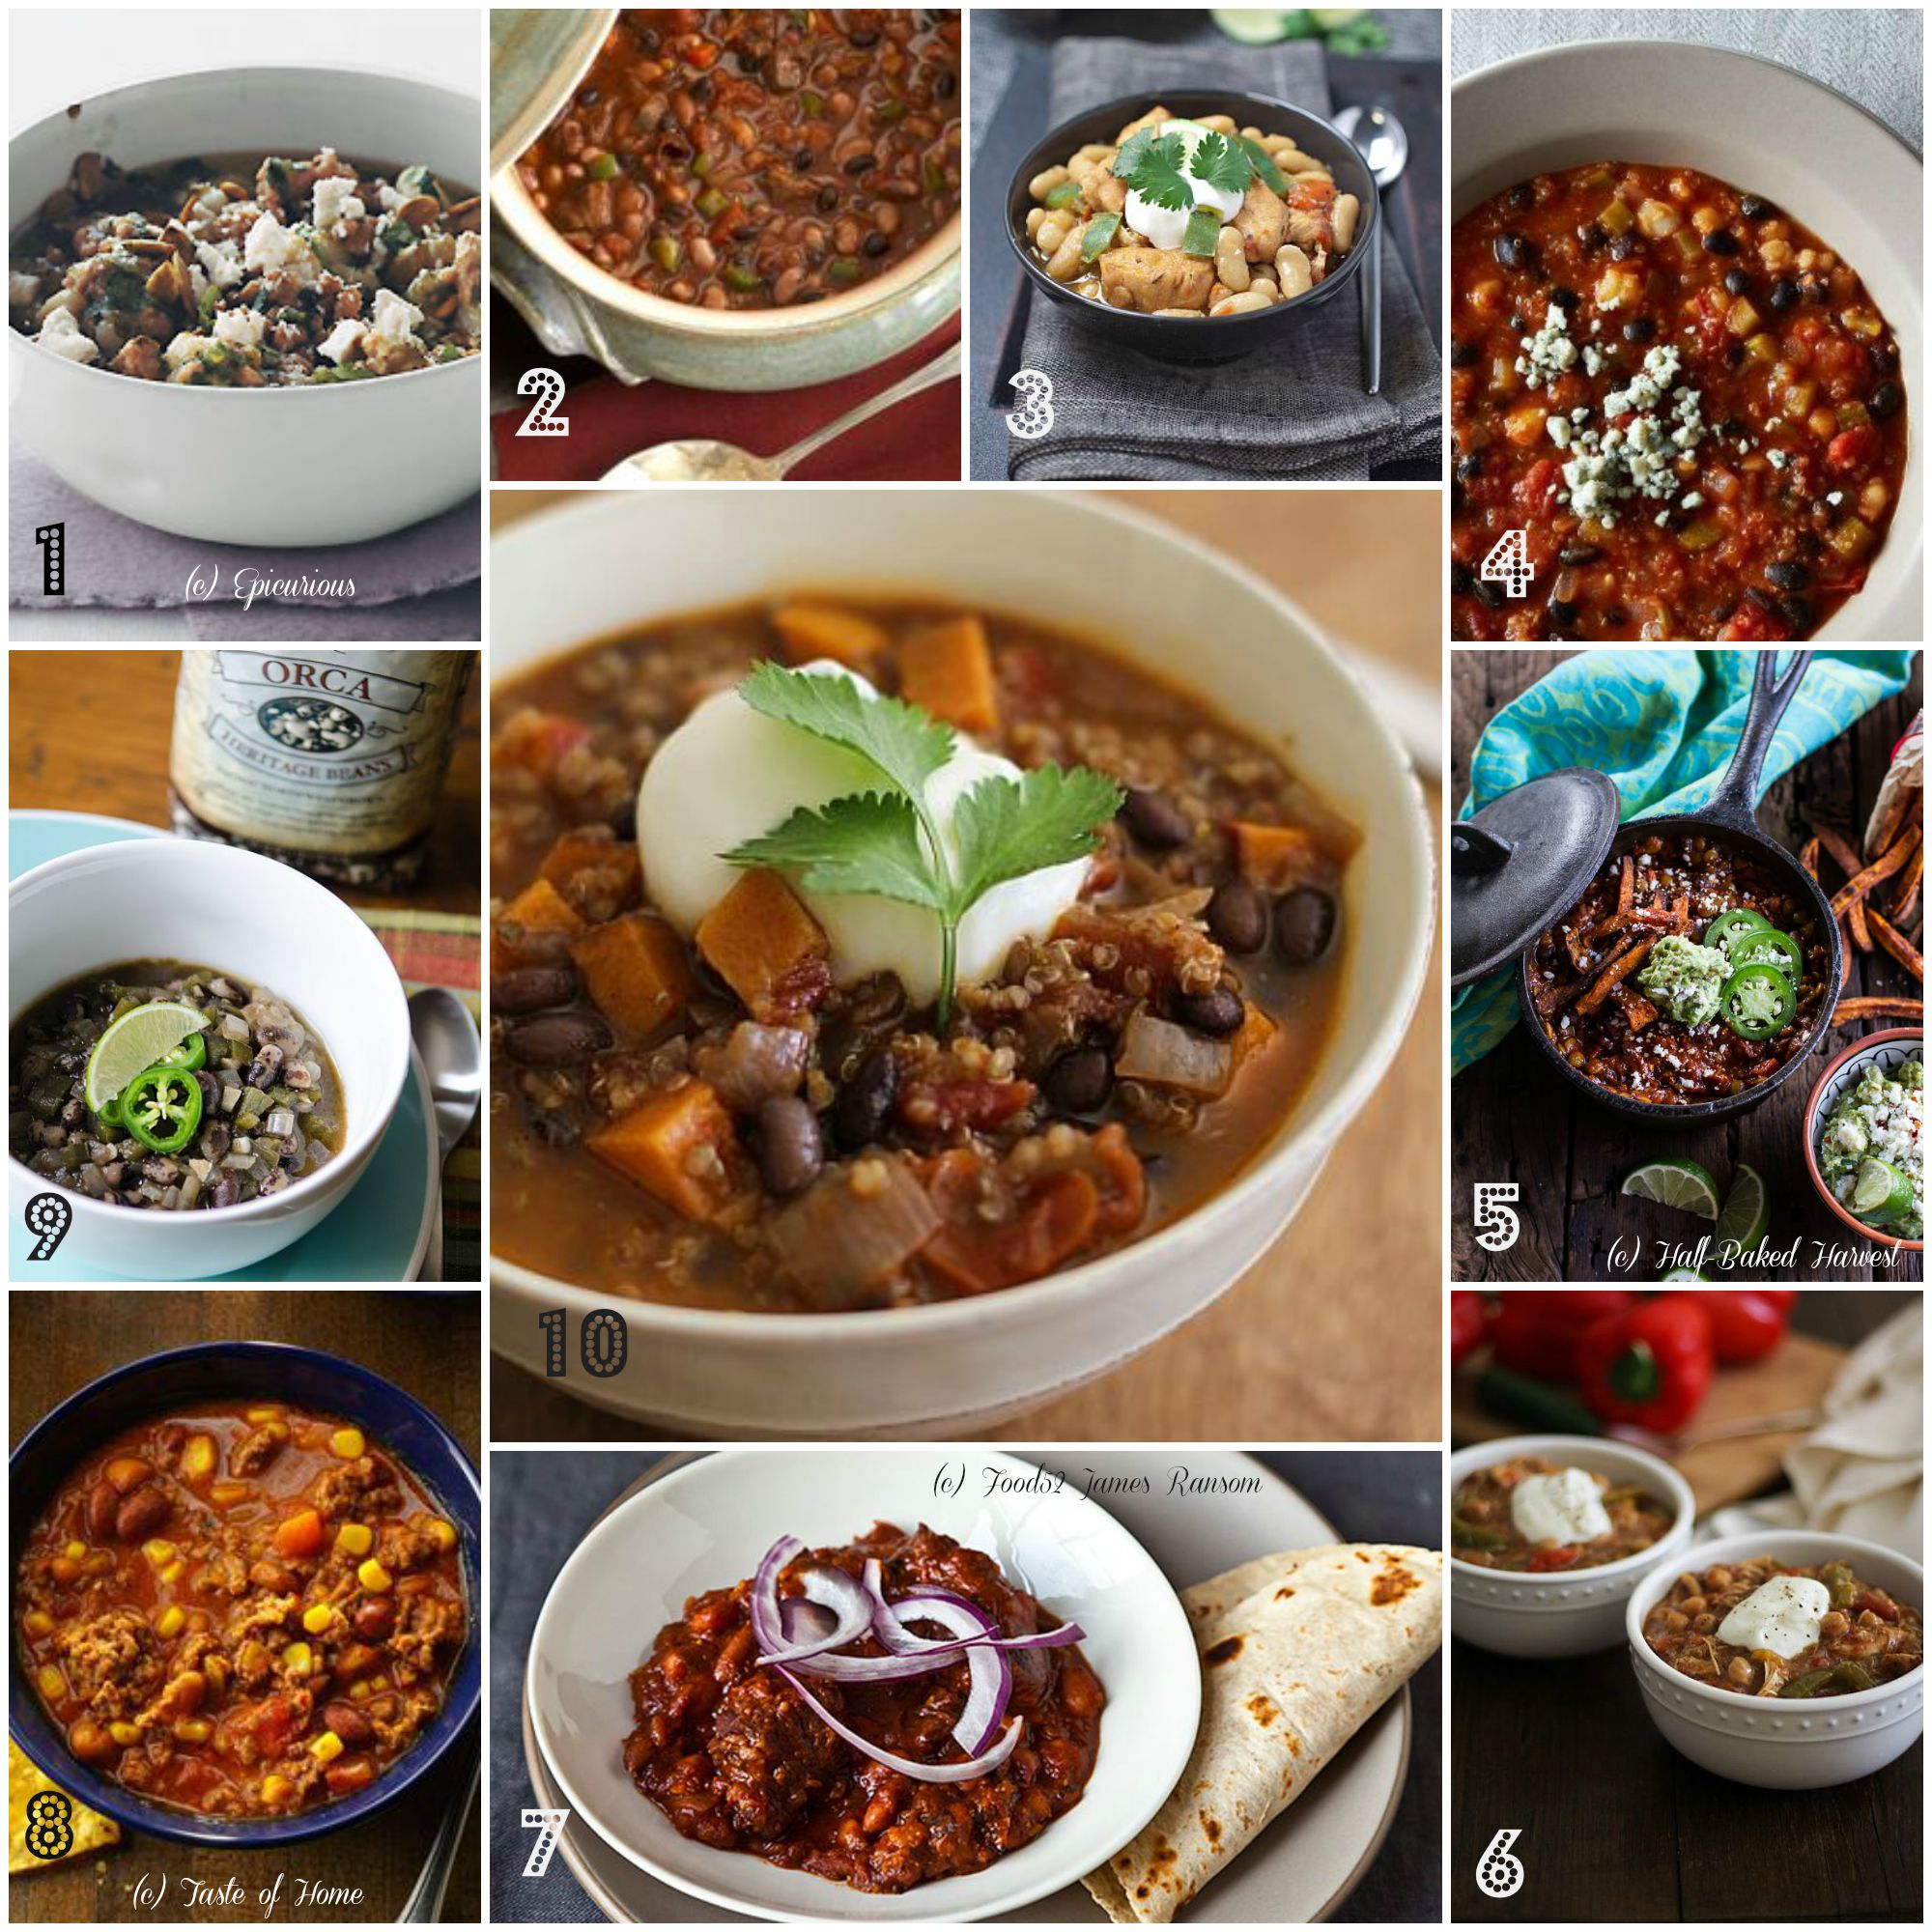 10 Killer Chili Recipes for fall! Vegetarian, Gluten Free, Meat-heavy, Green, White, we have all types listed! | Bob's Red Mill